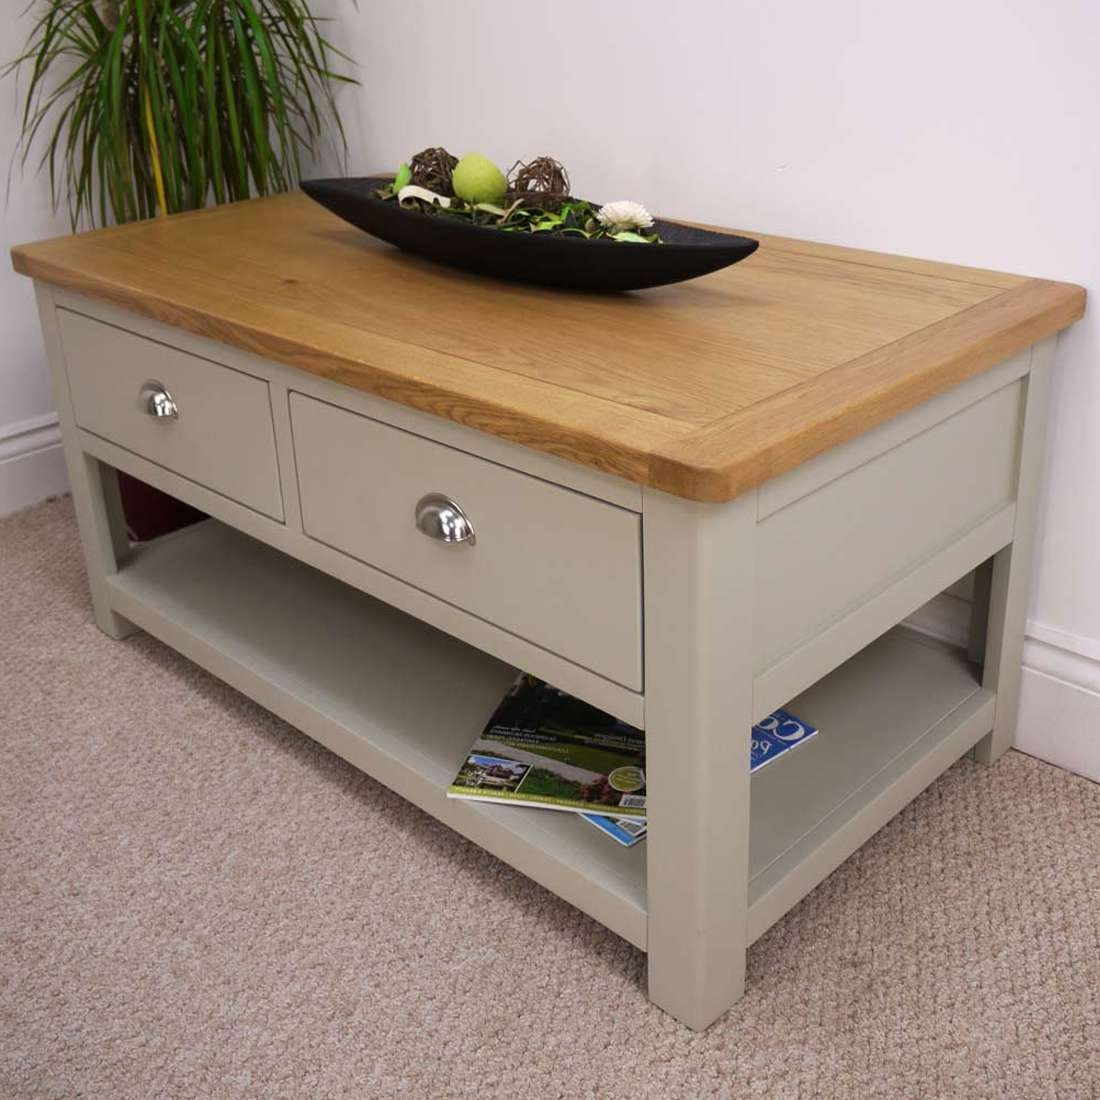 Trendy Oak Coffee Table With Drawers Pertaining To Aspen Oak Coffee Table With 2 Drawers & Shelf / Sage Grey Painted (View 18 of 20)